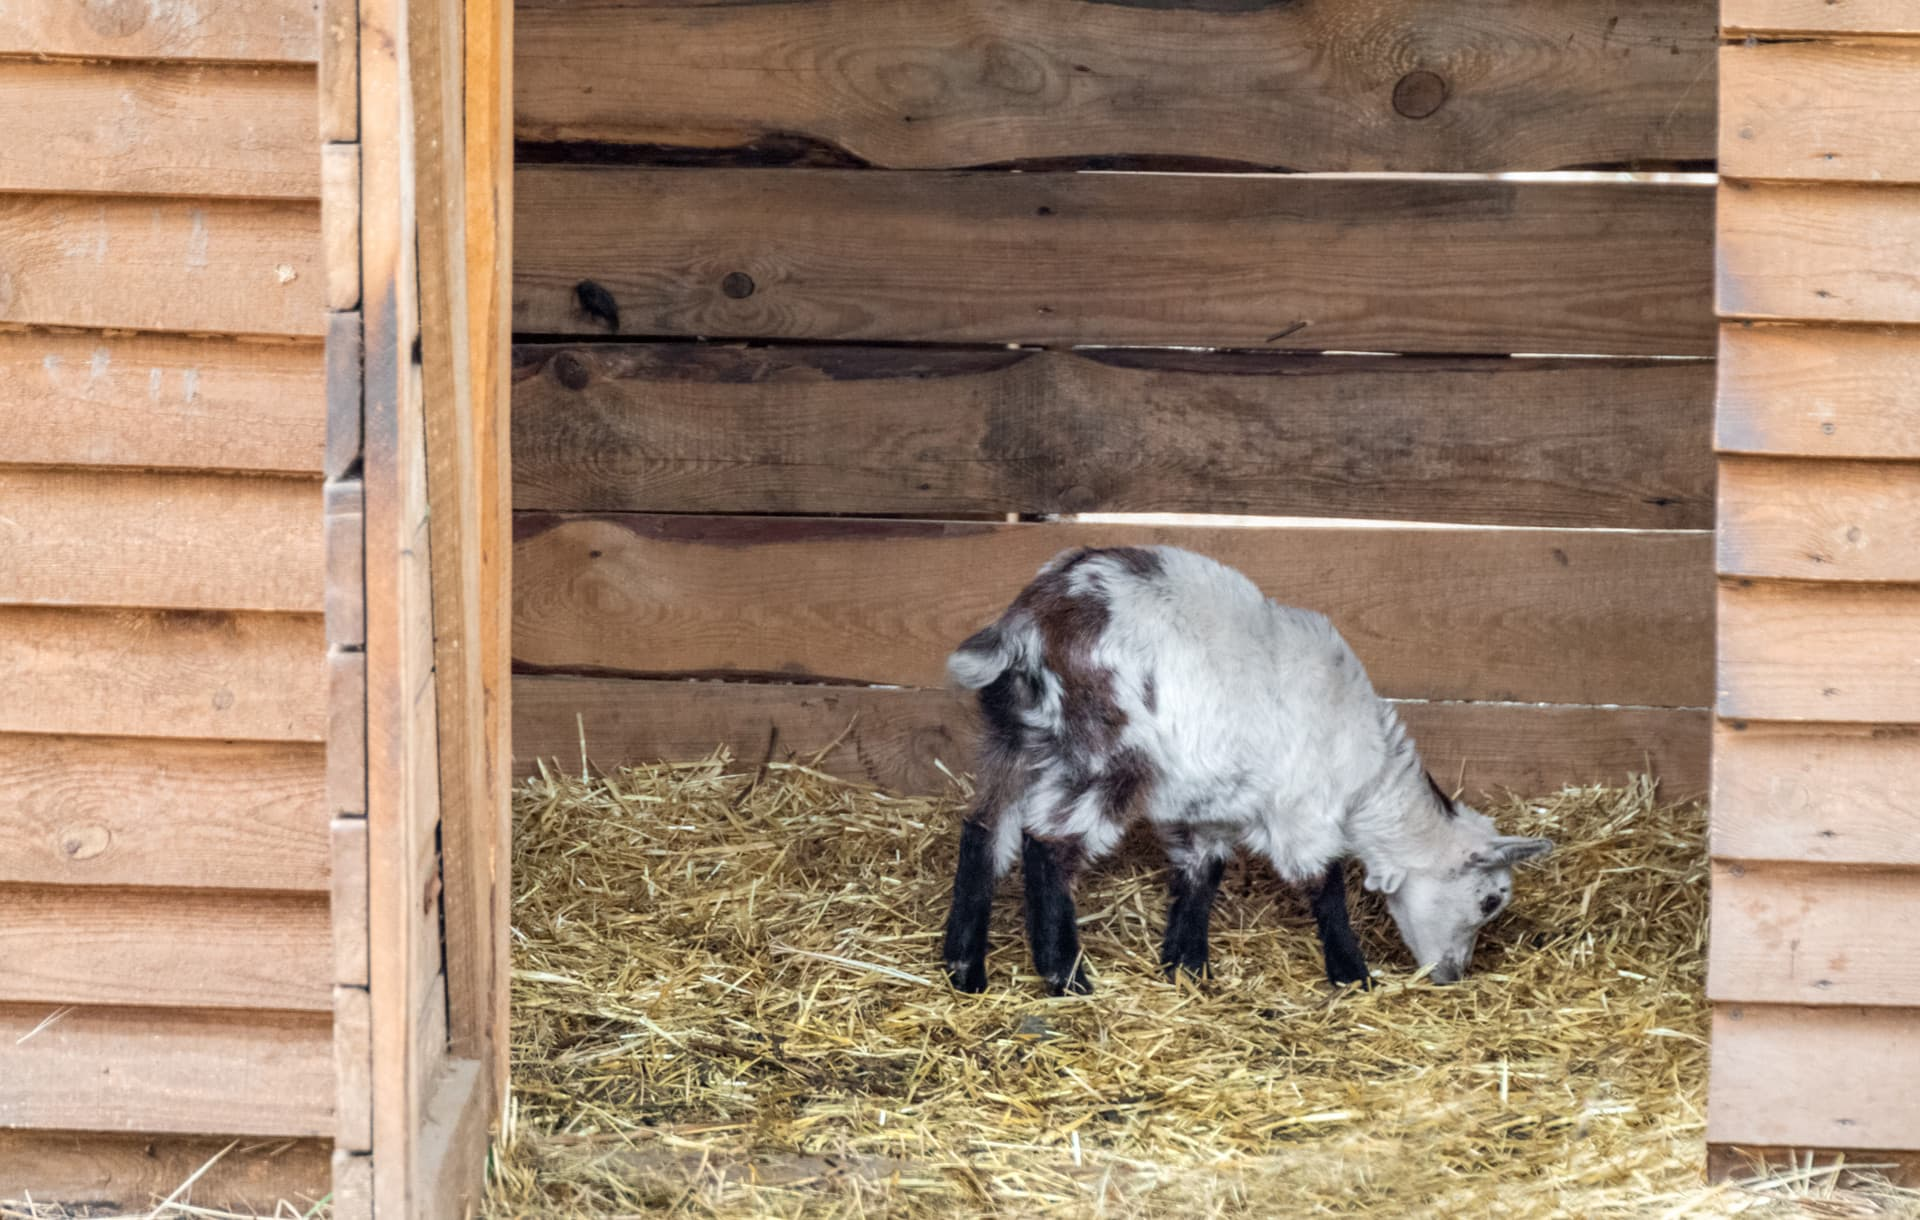 Our goat bedding and pen